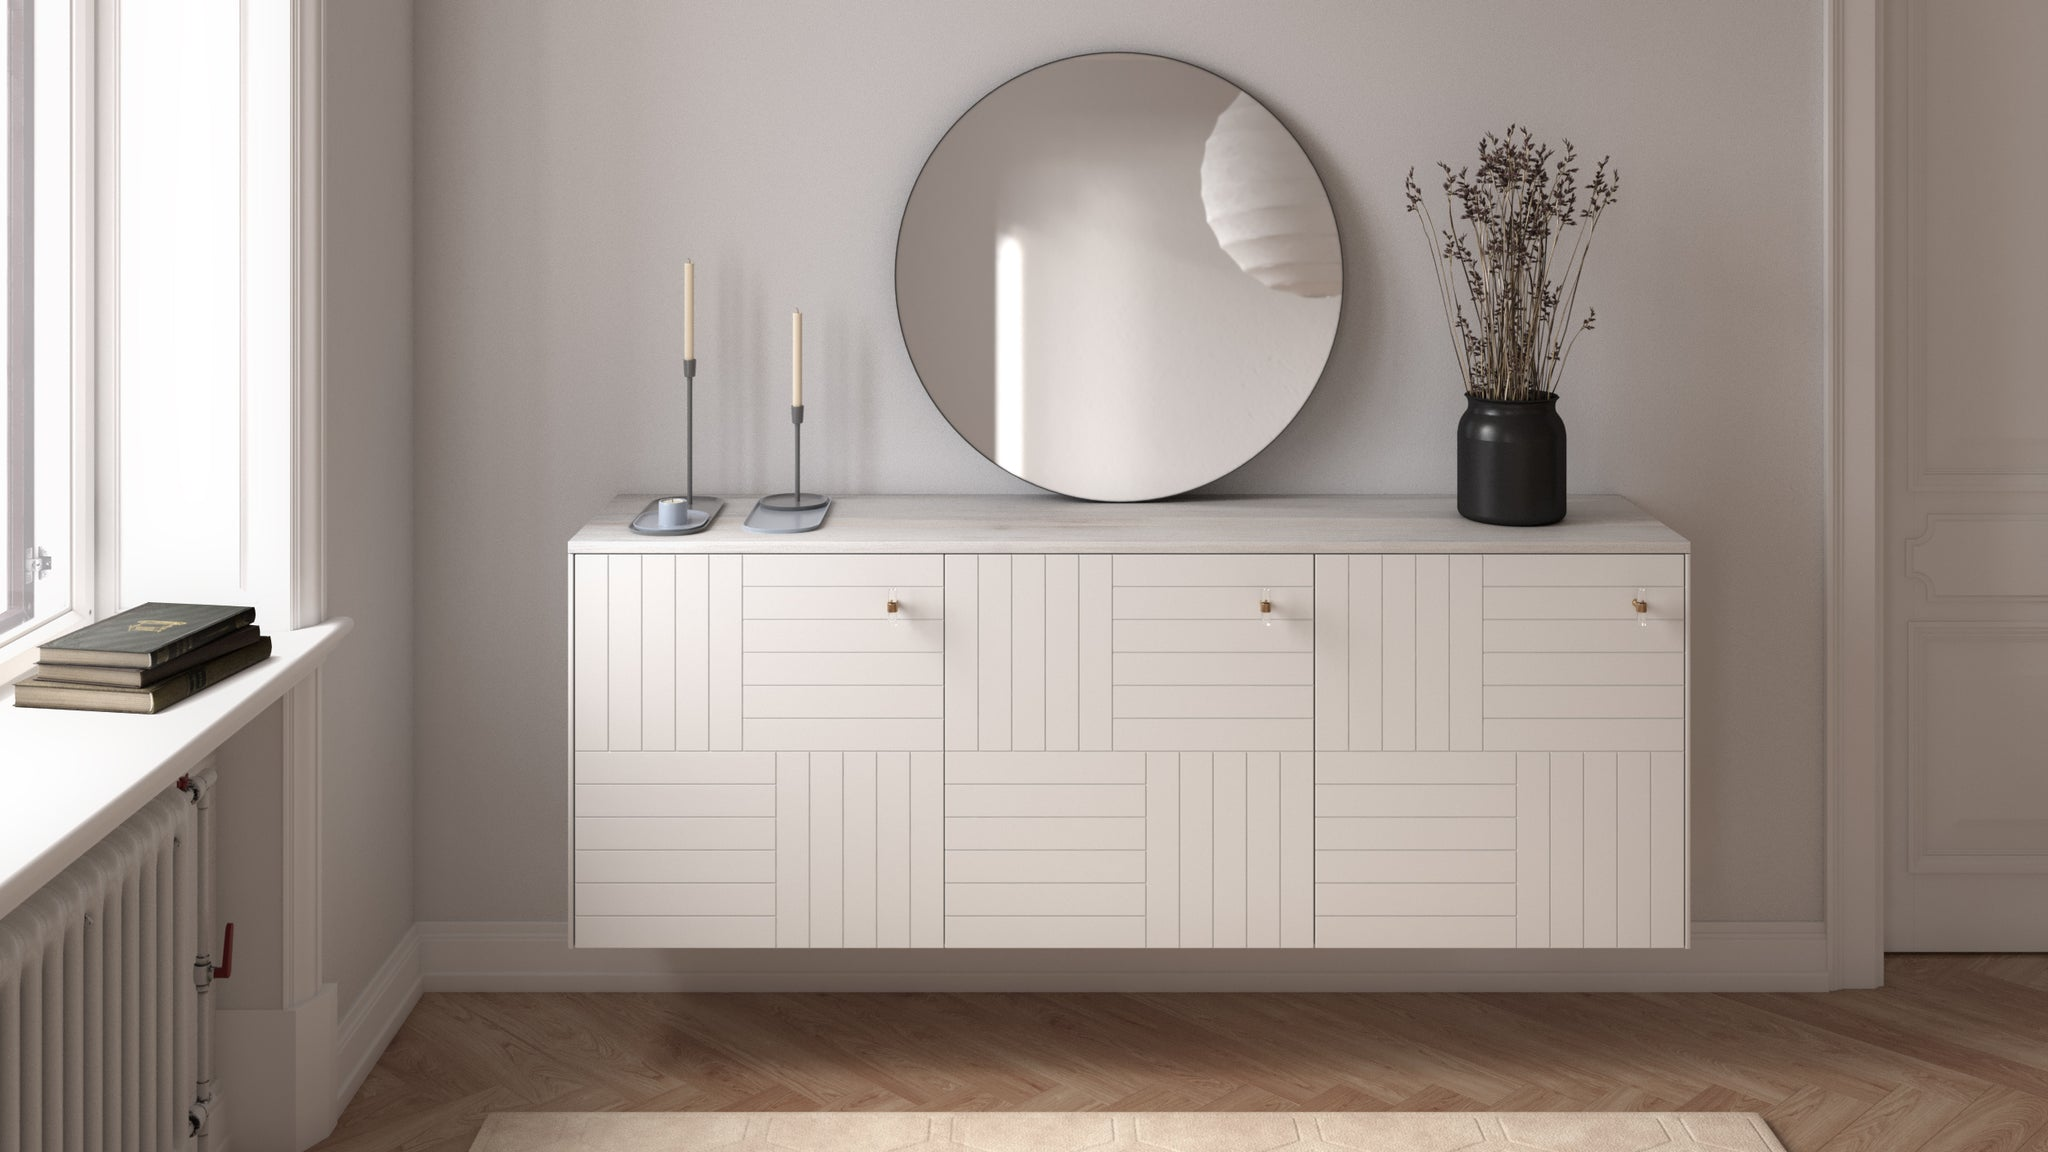 Norse Interiors Marie doors on an IKEA Besta sideboard with chrome hardware